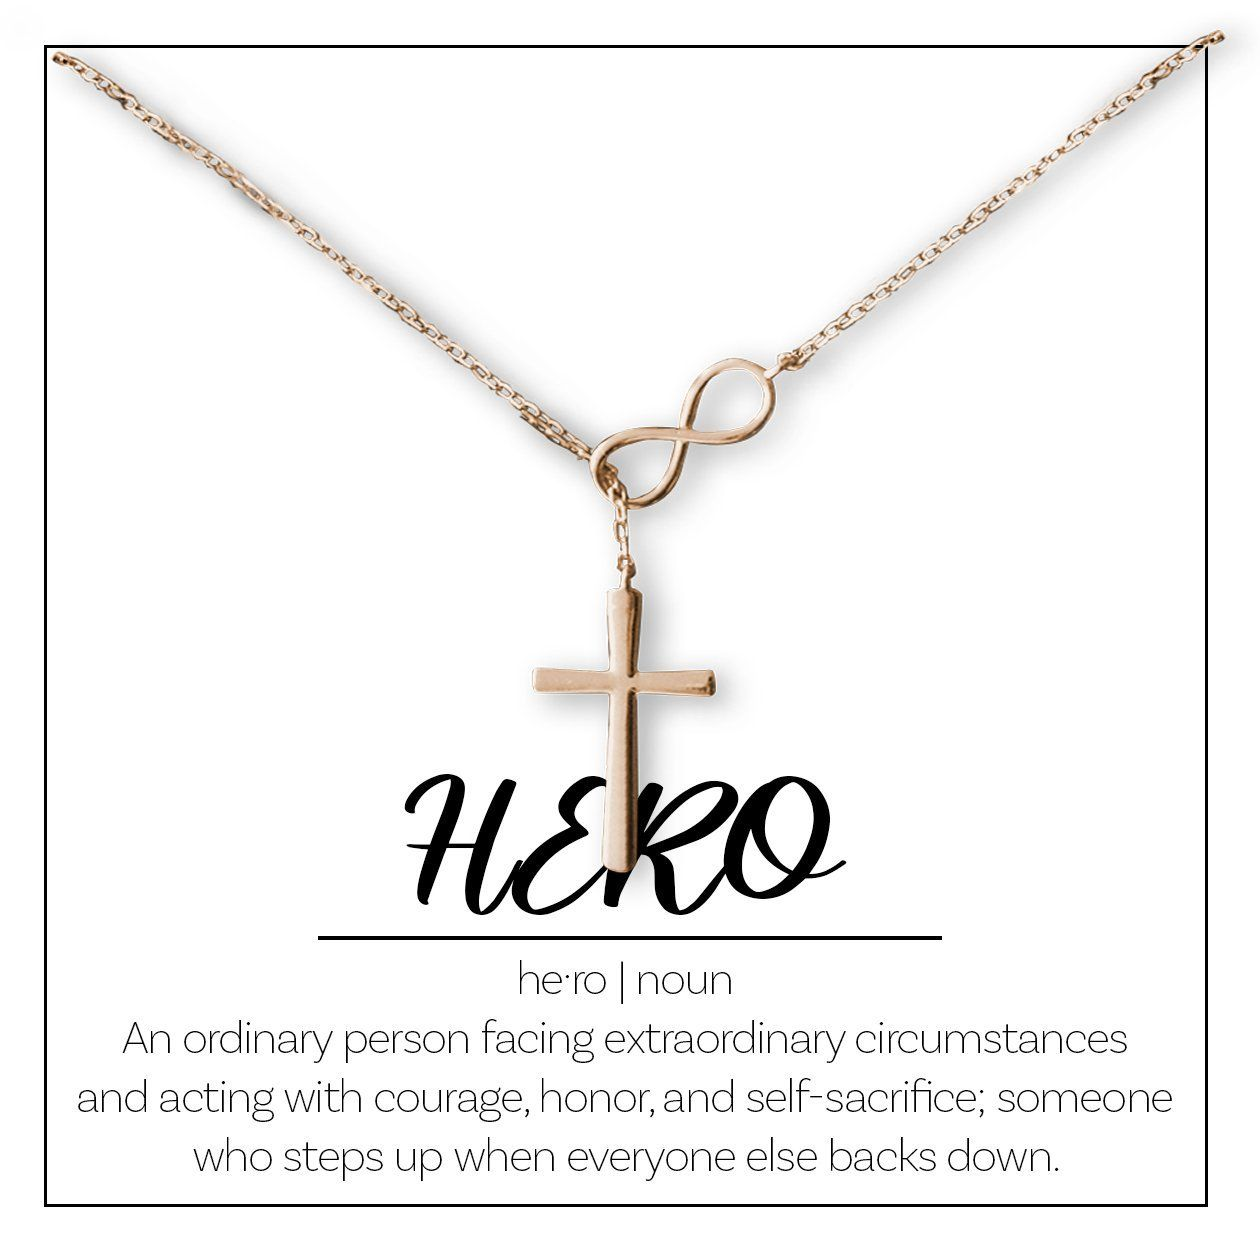 Veterans Day Gift, Veteran Gift for Her: Thank You, Army, Navy, Marines, Air Force, Hero, Vet, Appreciation, Thank You For Your Service, Infinity Cross, Rose Gold #veteransdaythankyou